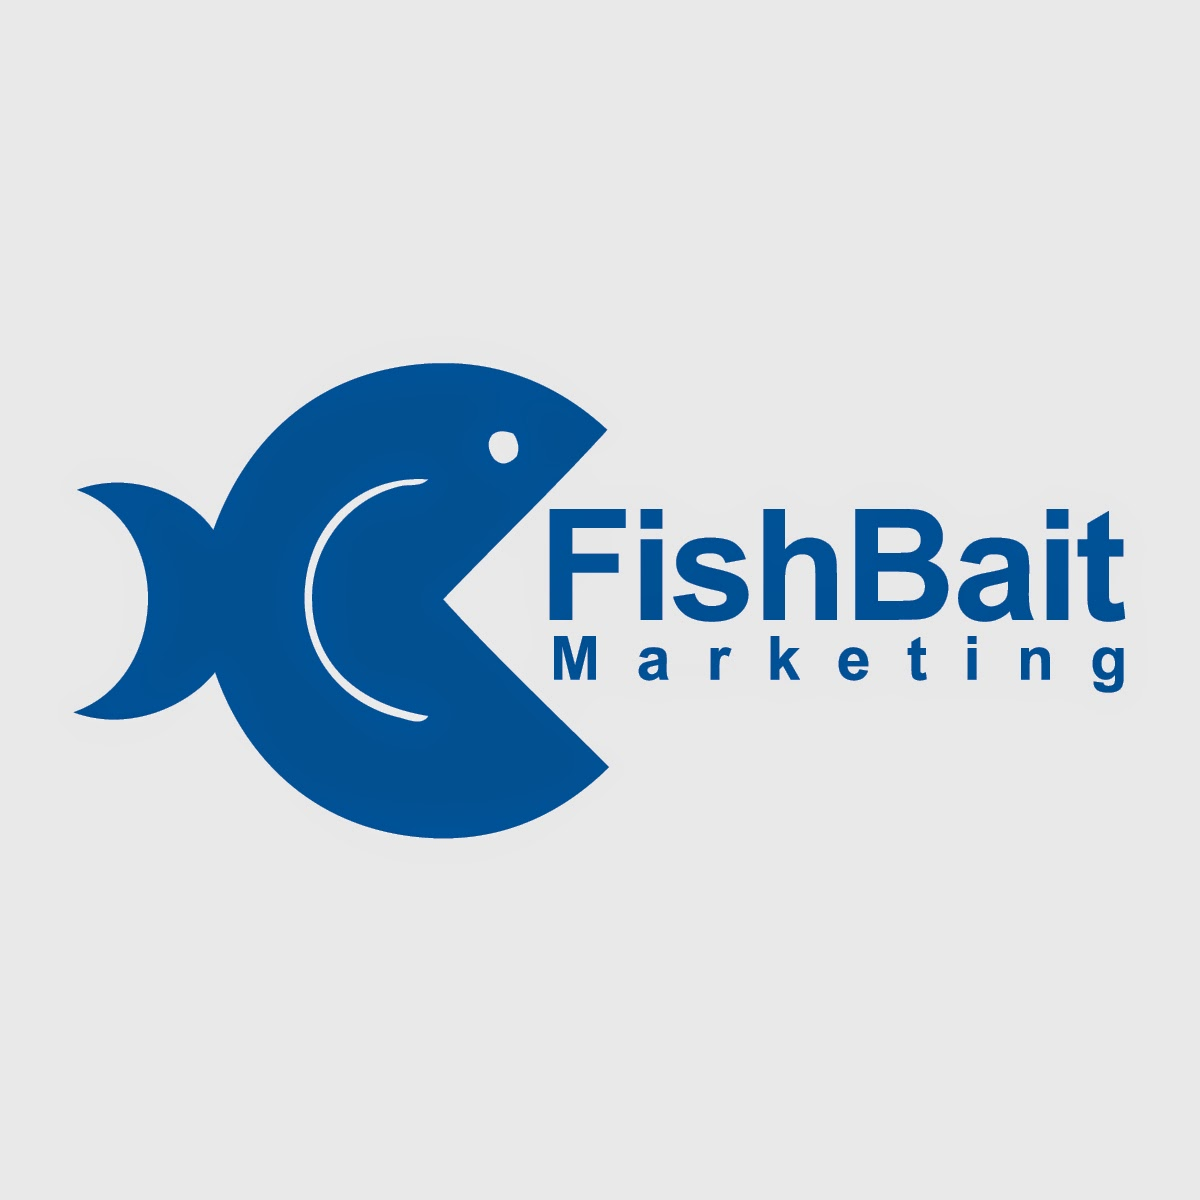 FishBait Marketing